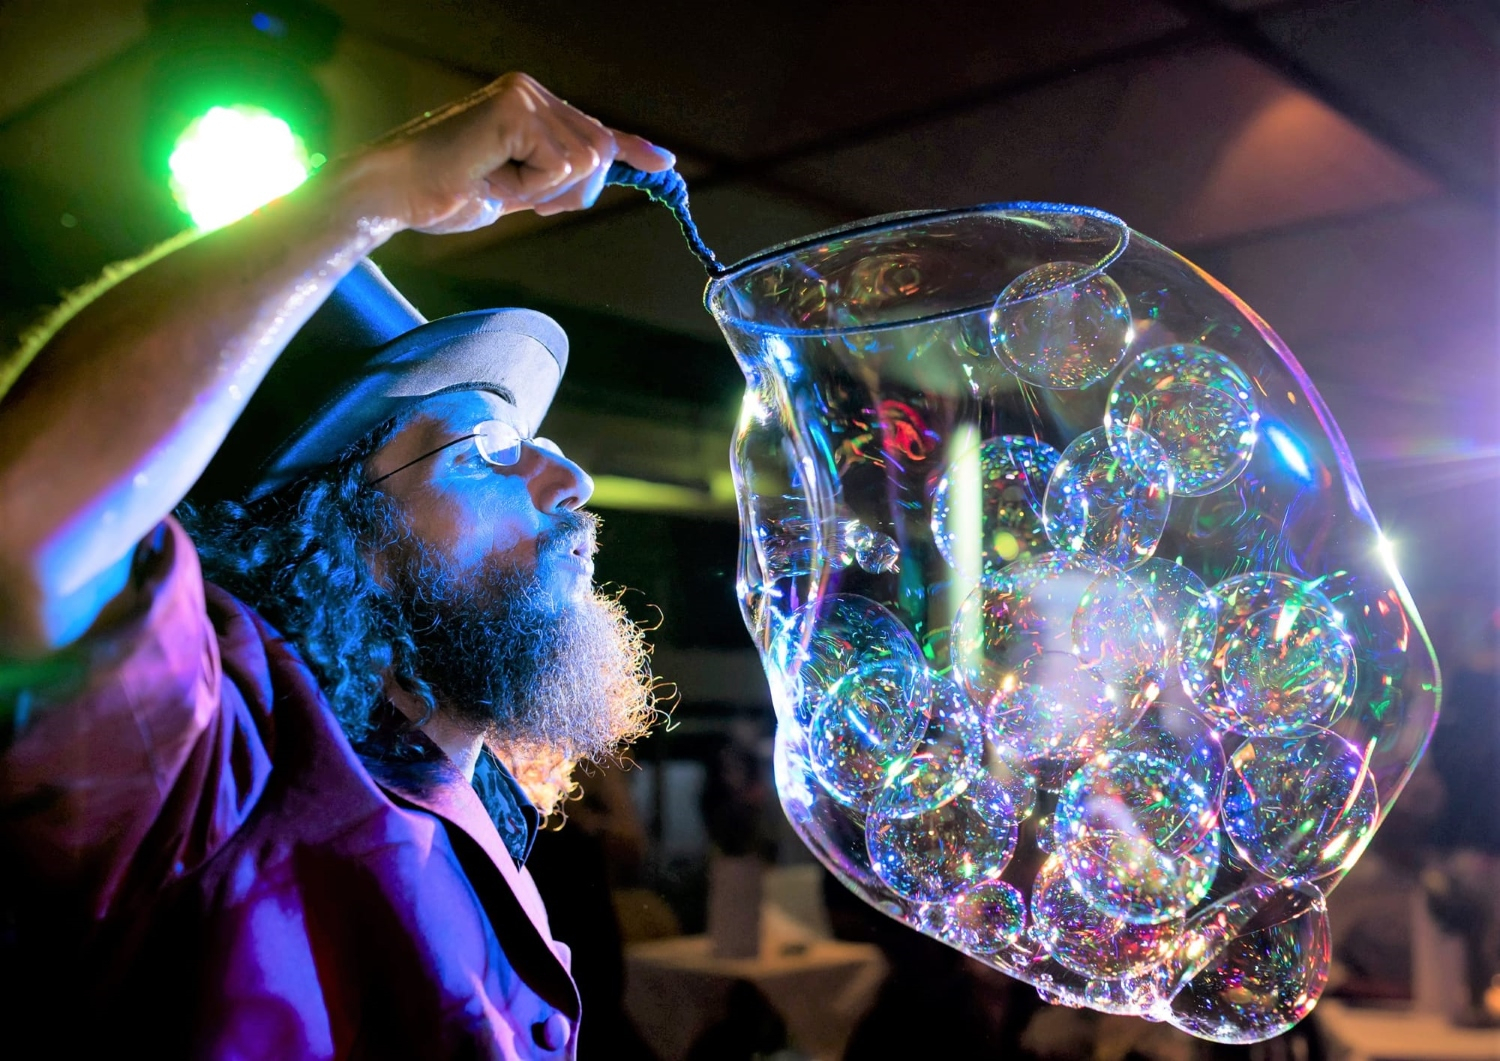 Bubble Show - Dr. Bubbles © Thorsten Vincetic